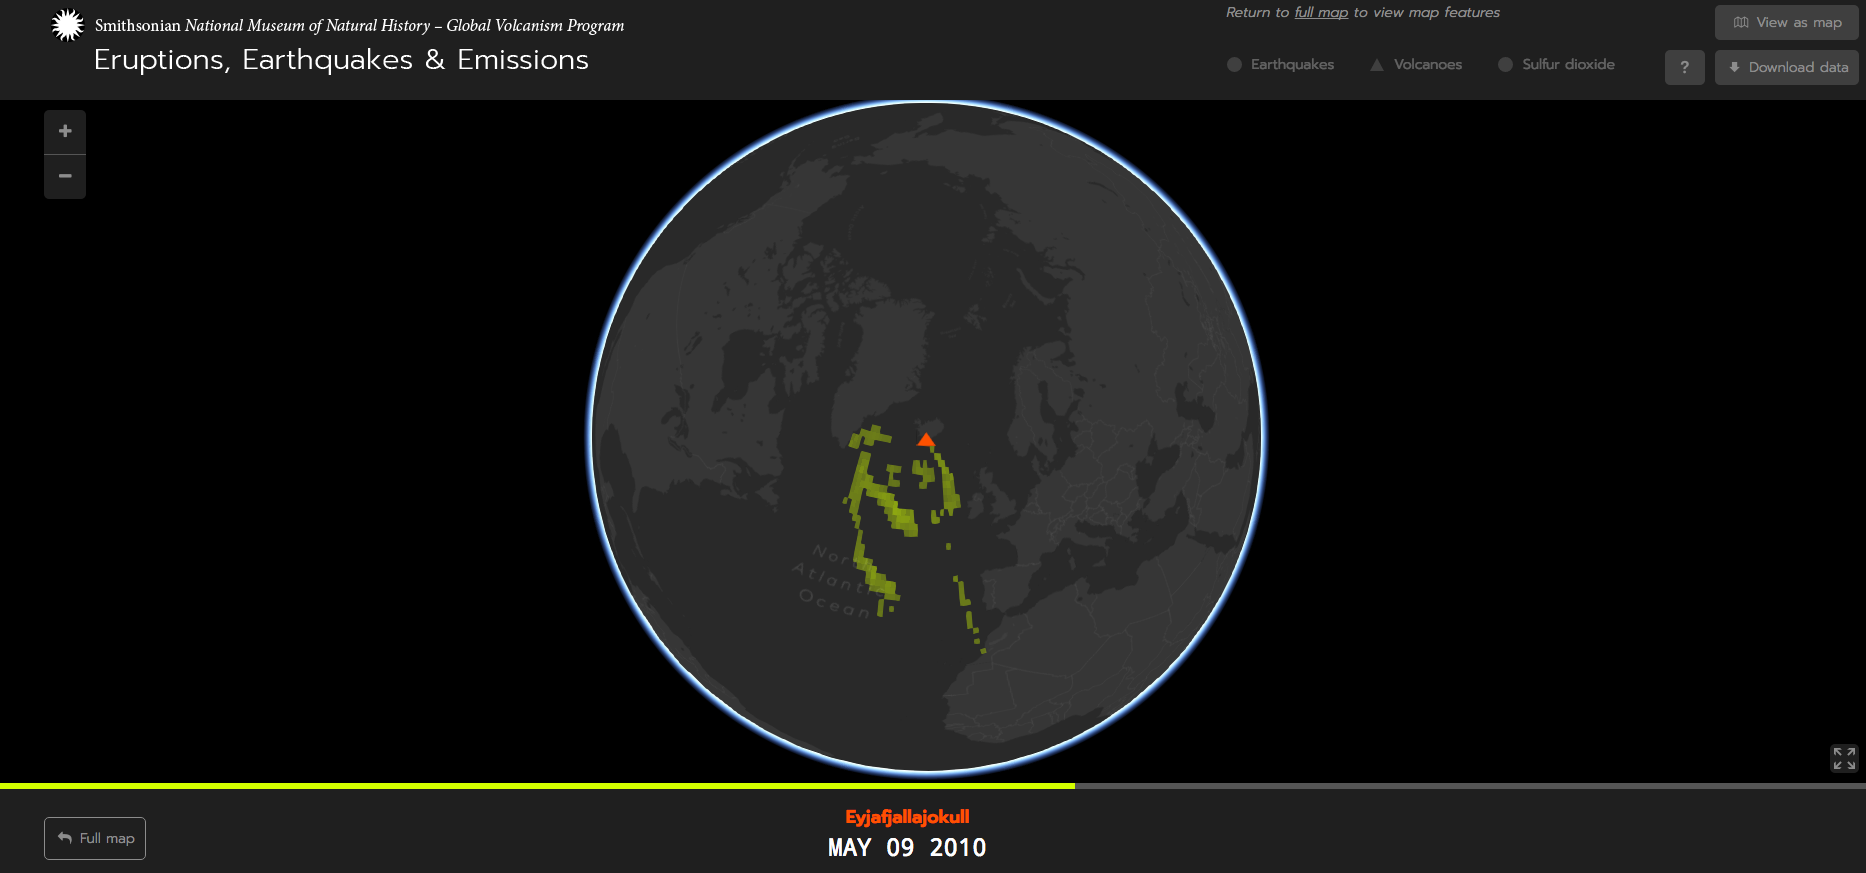 Eruptions, Earthquakes, & Emissions: Visualizing the